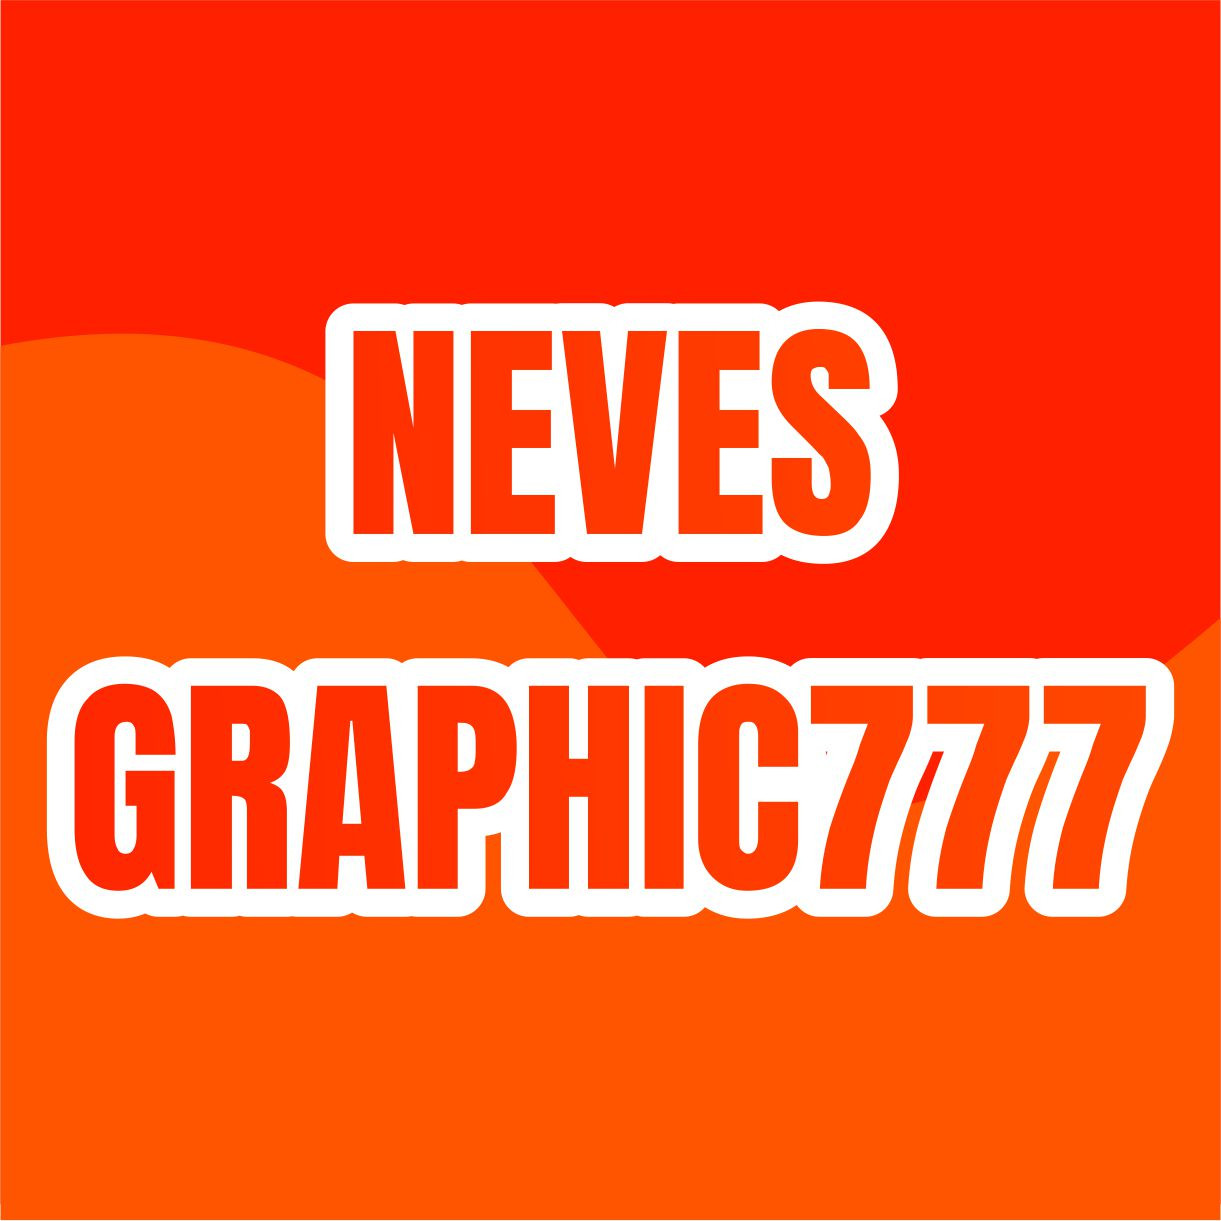 neves.graphic777